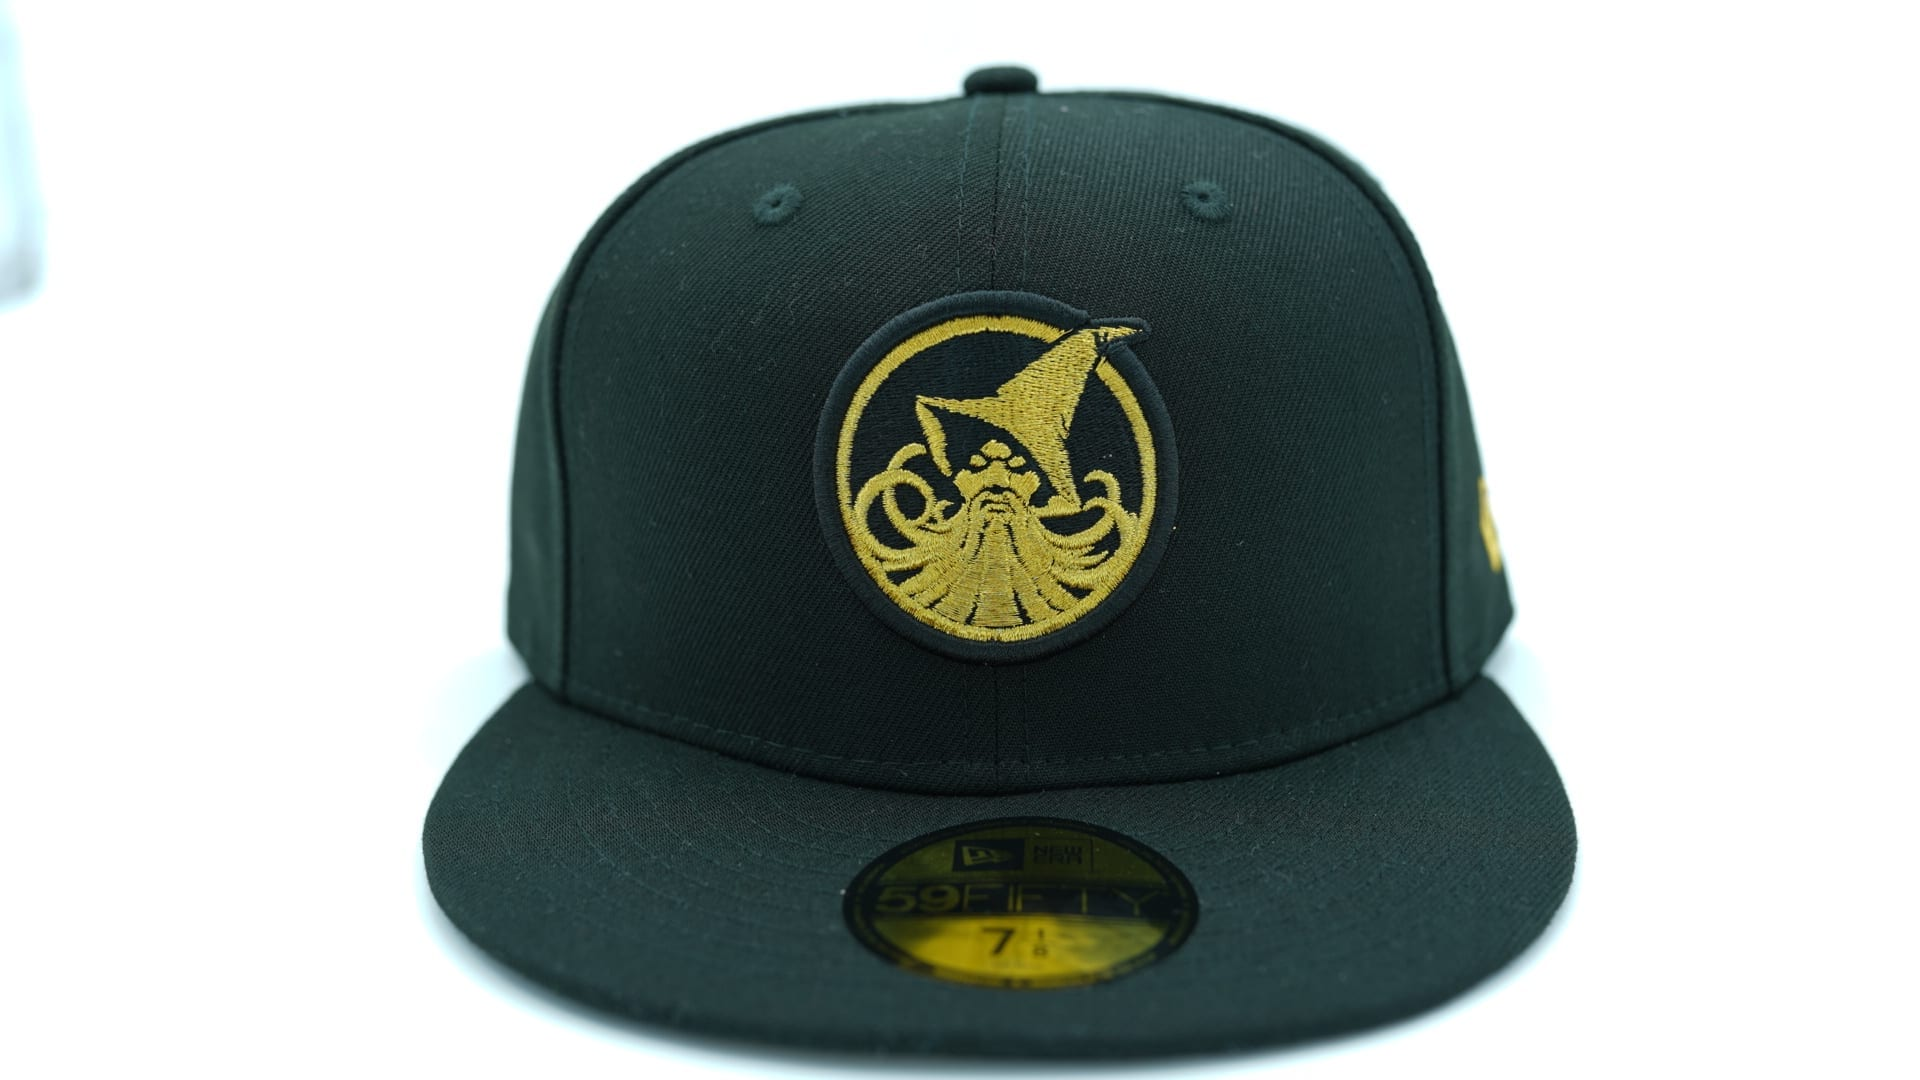 World Champions Retro 59Fifty Fitted Cap by MAJOR DC x NEW ERA